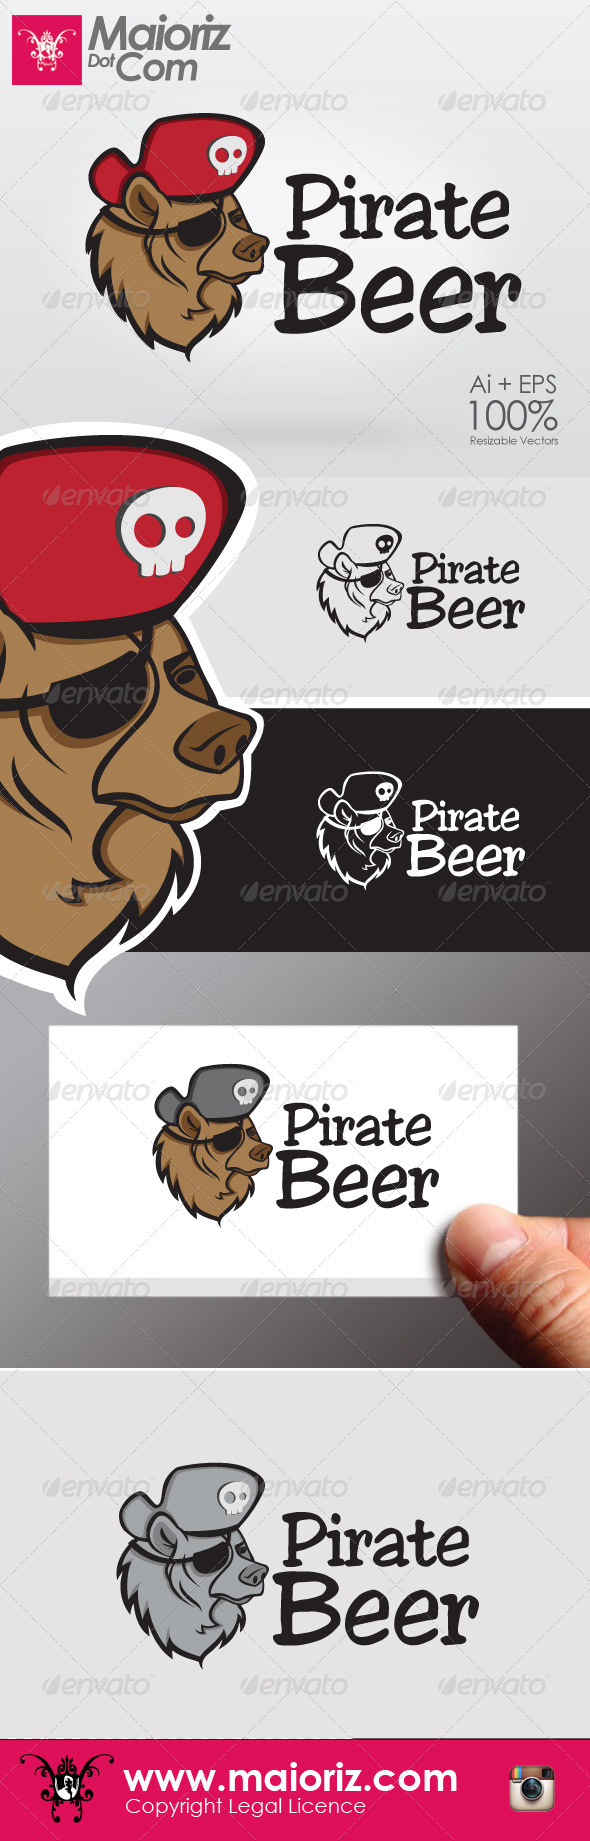 Pirate Beer Logo - Animals Logo Templates